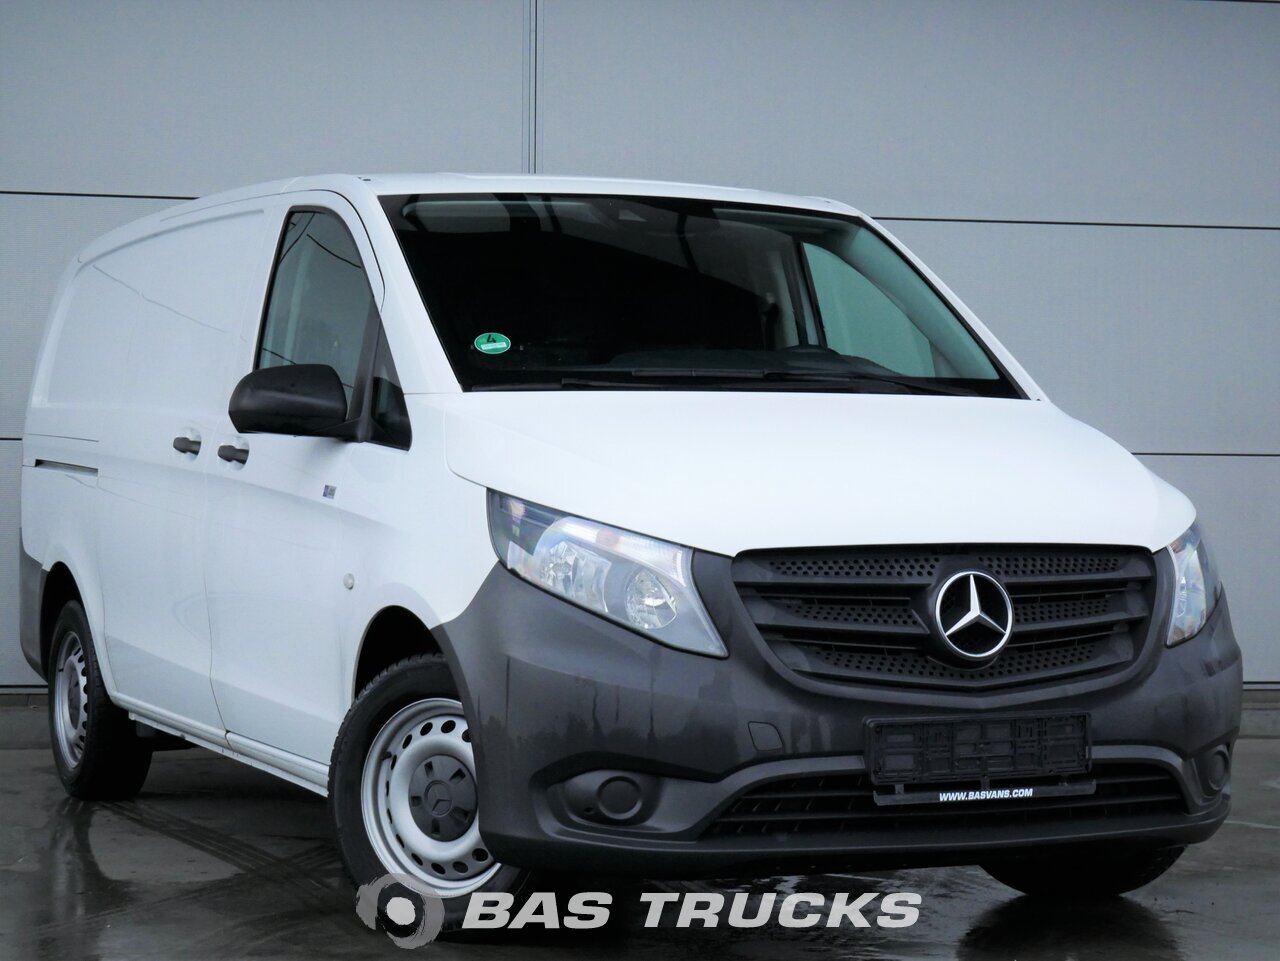 For sale at BAS Trucks: Mercedes Vito 06/2015